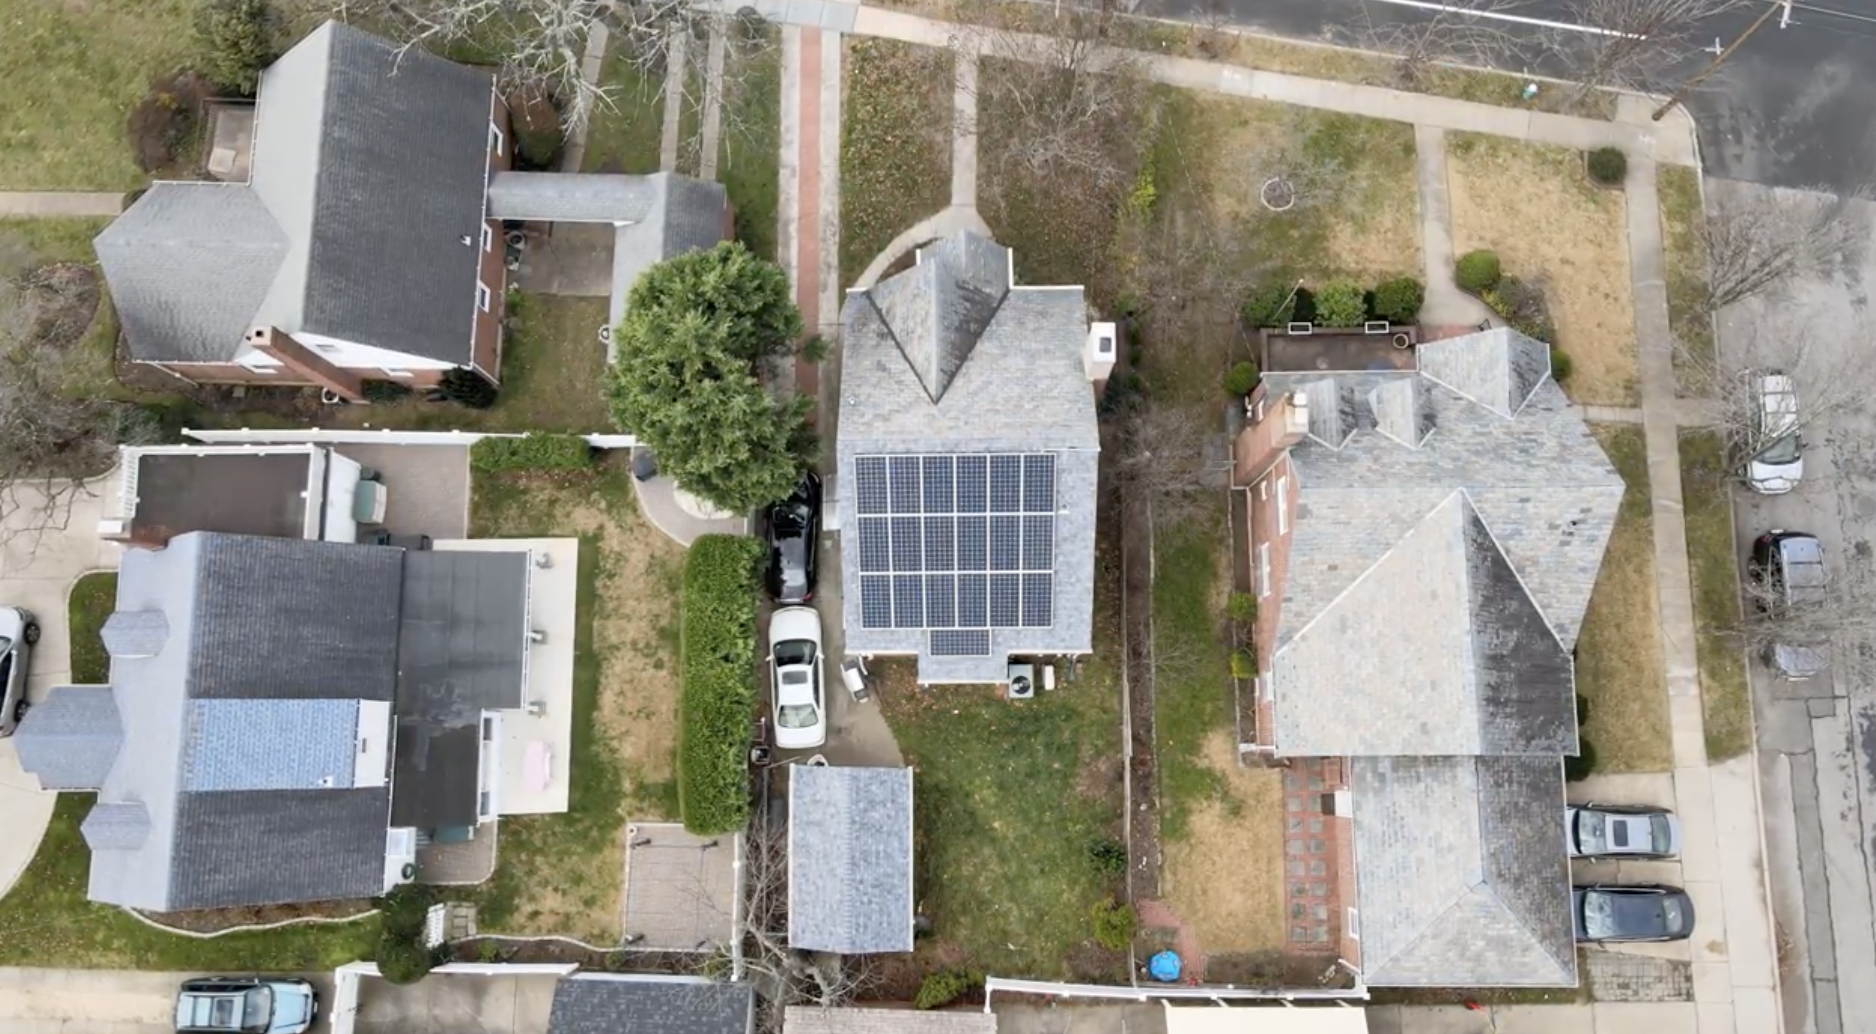 How Does the New York State Solar Initiative Work?